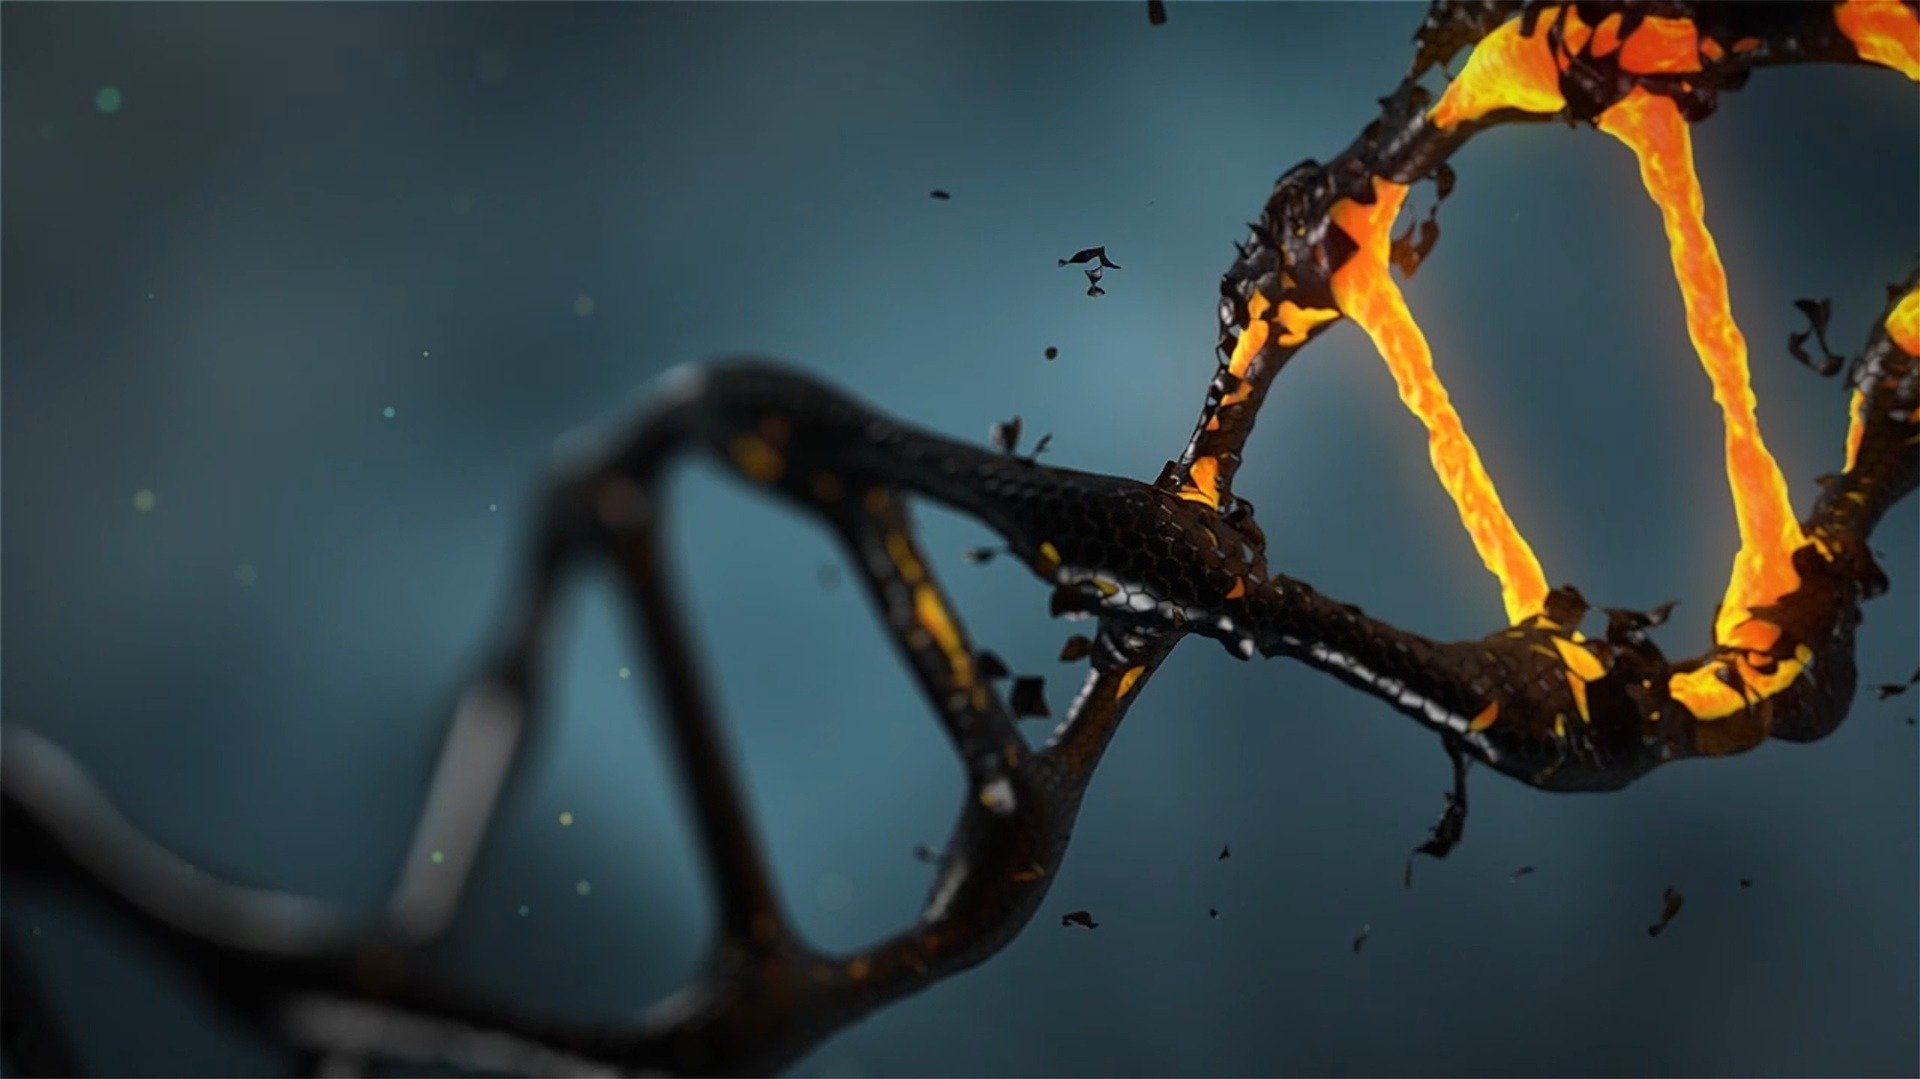 Electrical wire properties of DNA linked to cancer